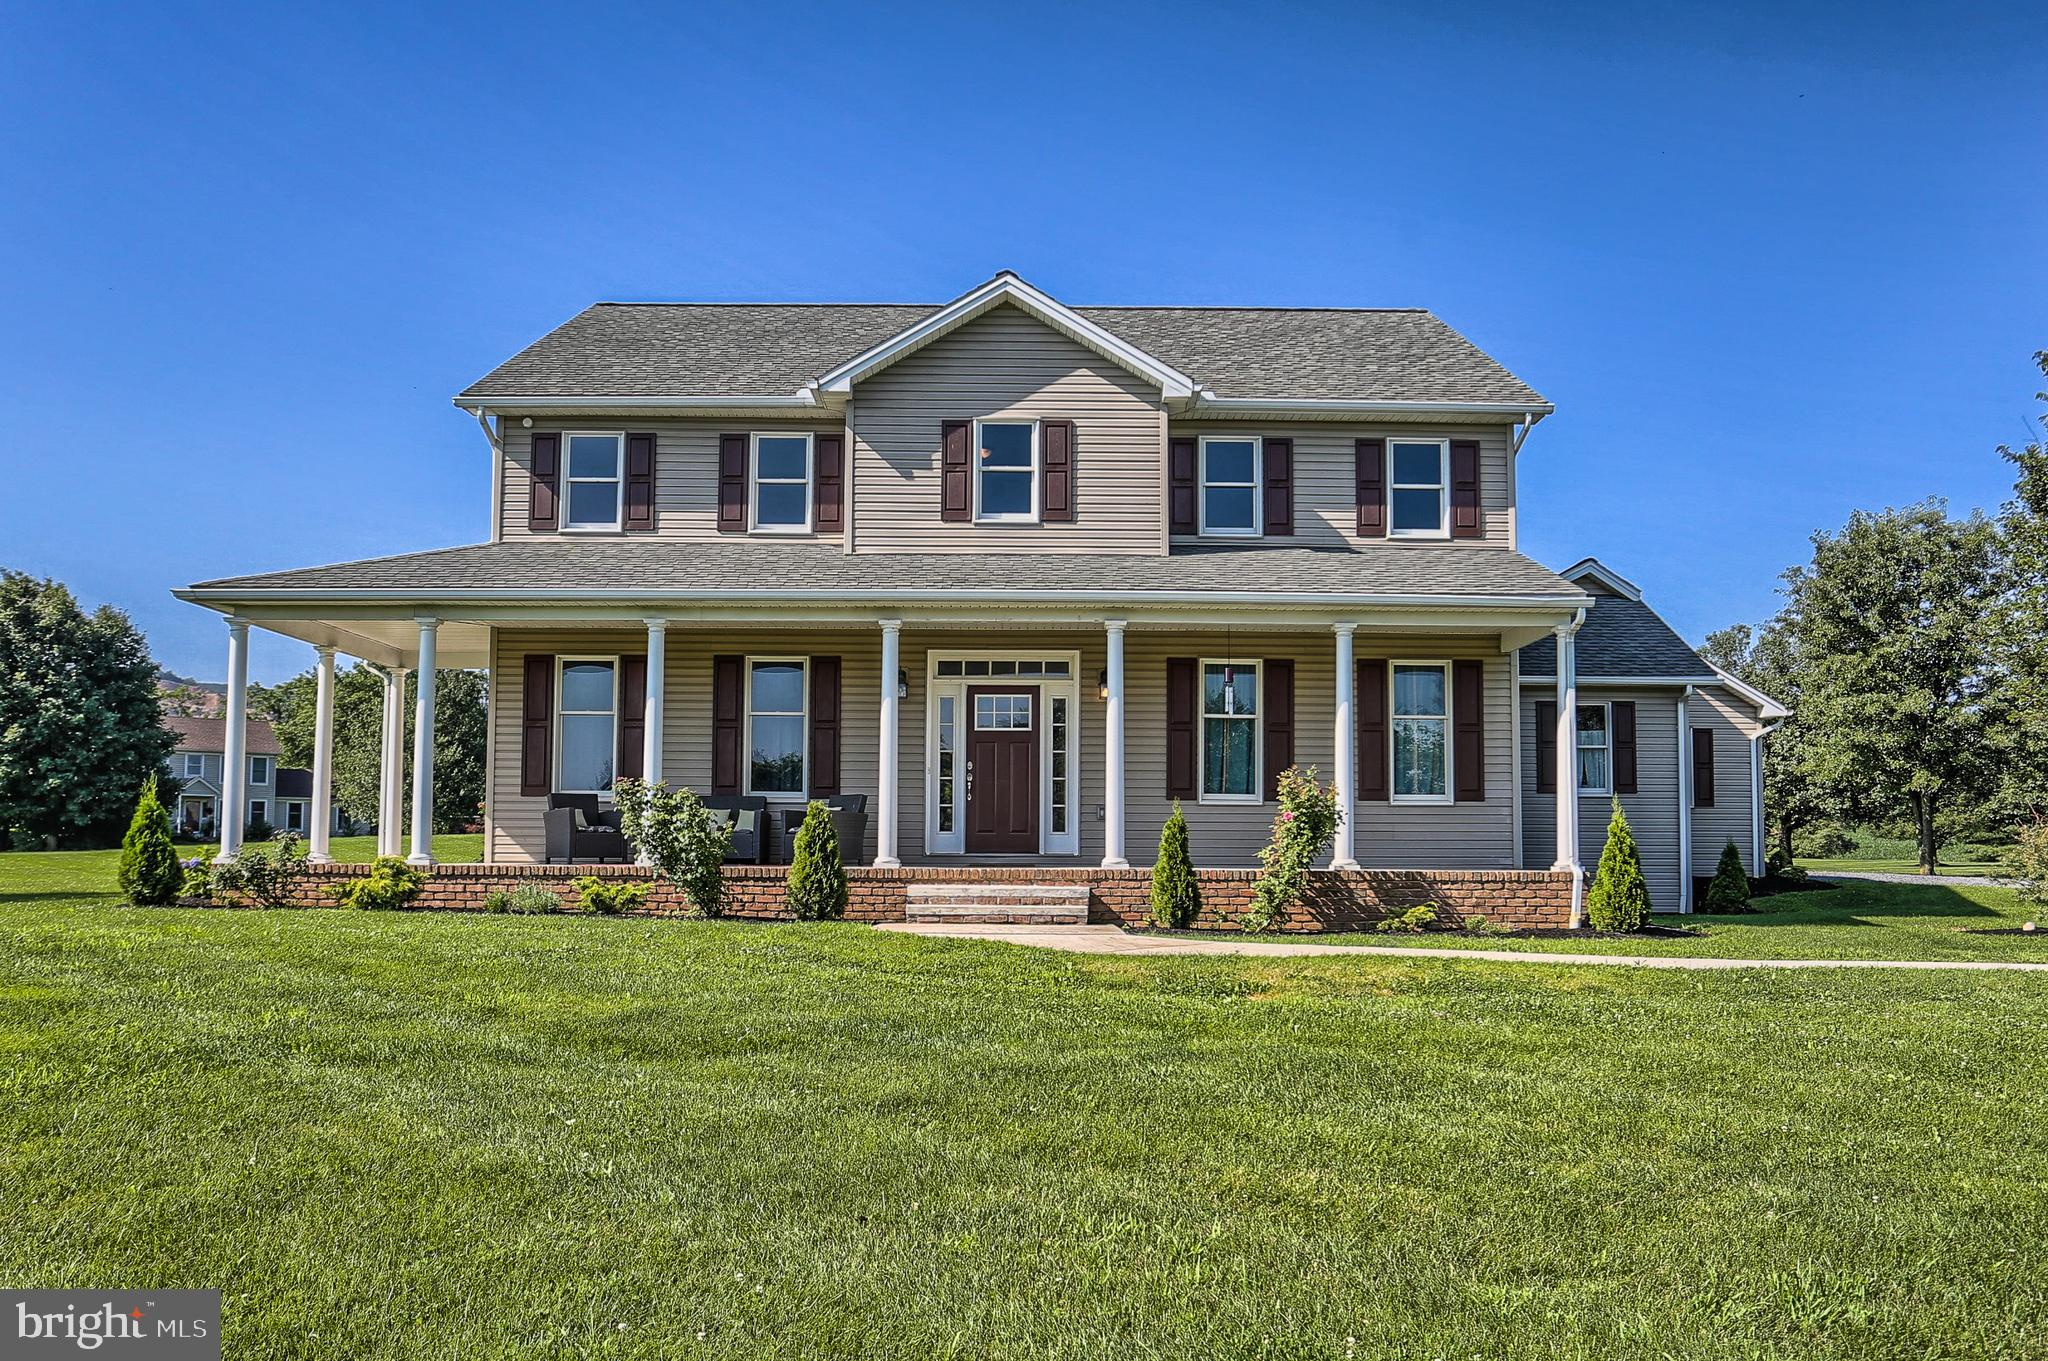 172 MOUNTAINVIEW ROAD, MOUNT HOLLY SPRINGS, PA 17065